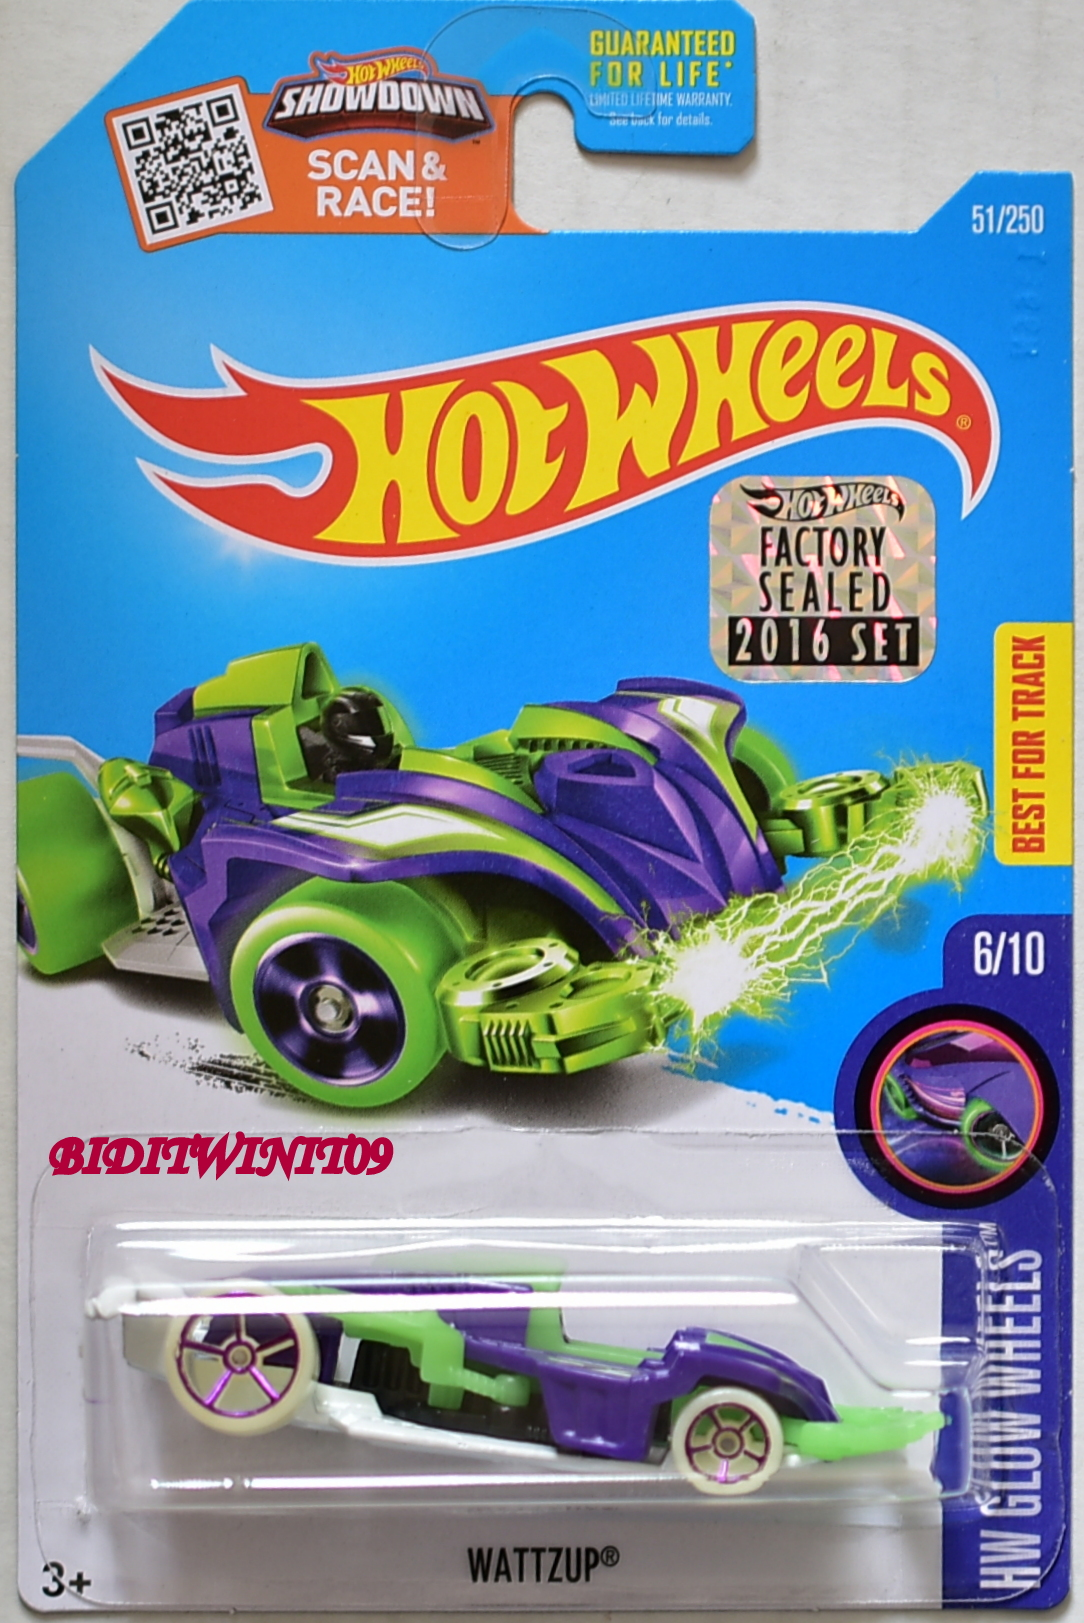 HOT WHEELS 2016 HW GLOW WHEELS WATTZUP #6/10 PURPLE FACTORY SEALED E+